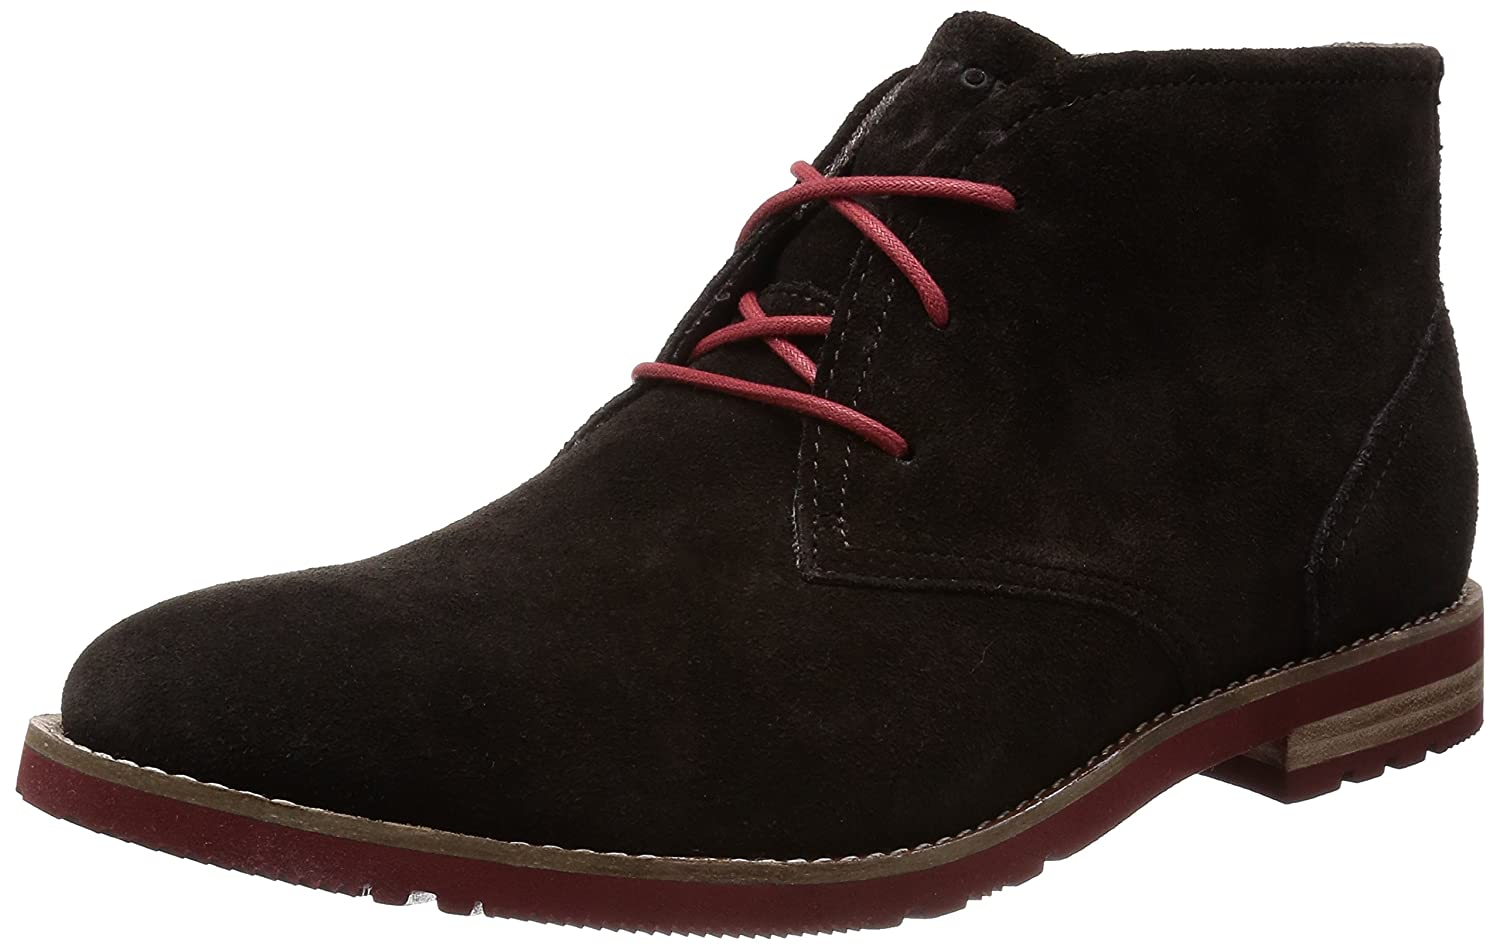 Amazon.co.jp: [ロックポート] ROCKPORT Ledge Hill Too Chukka: シューズ&バッグ:通販